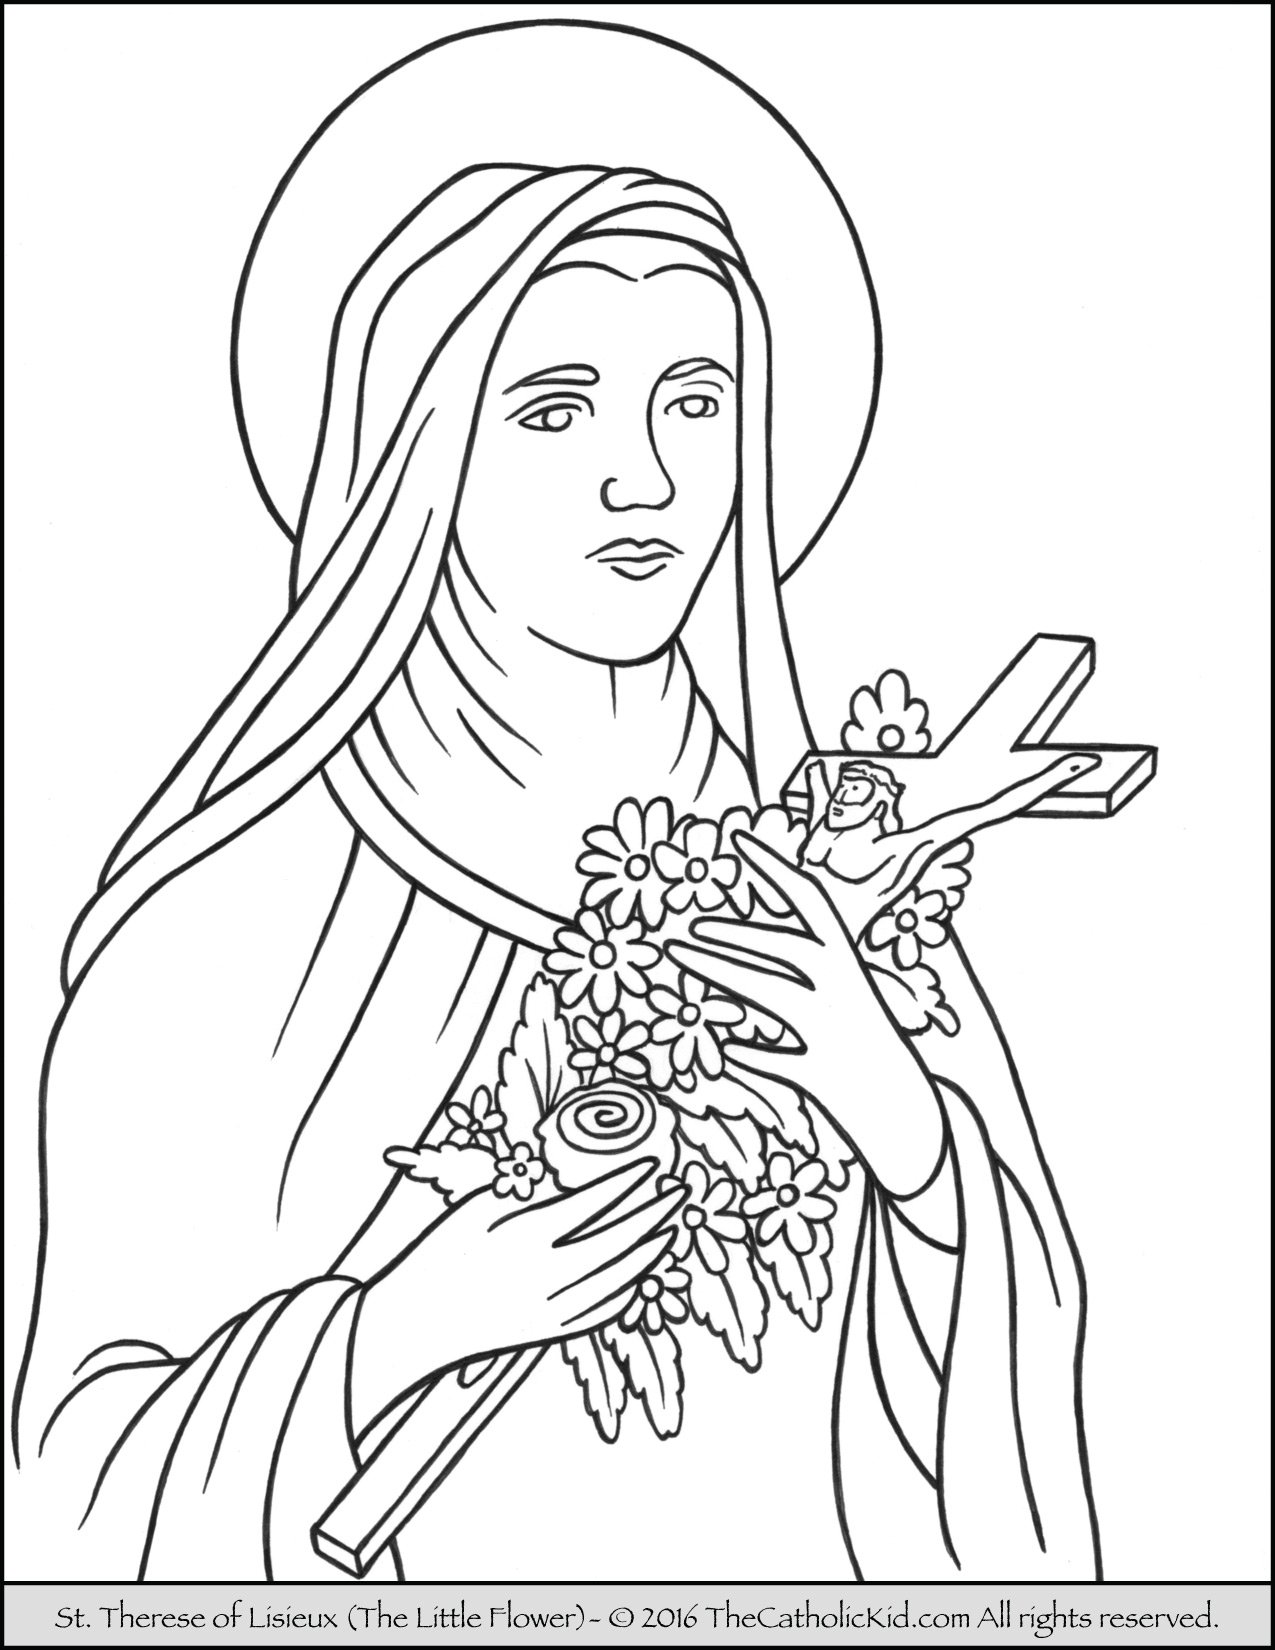 Saint Therese of Lisieux - Little Flower Coloring Page